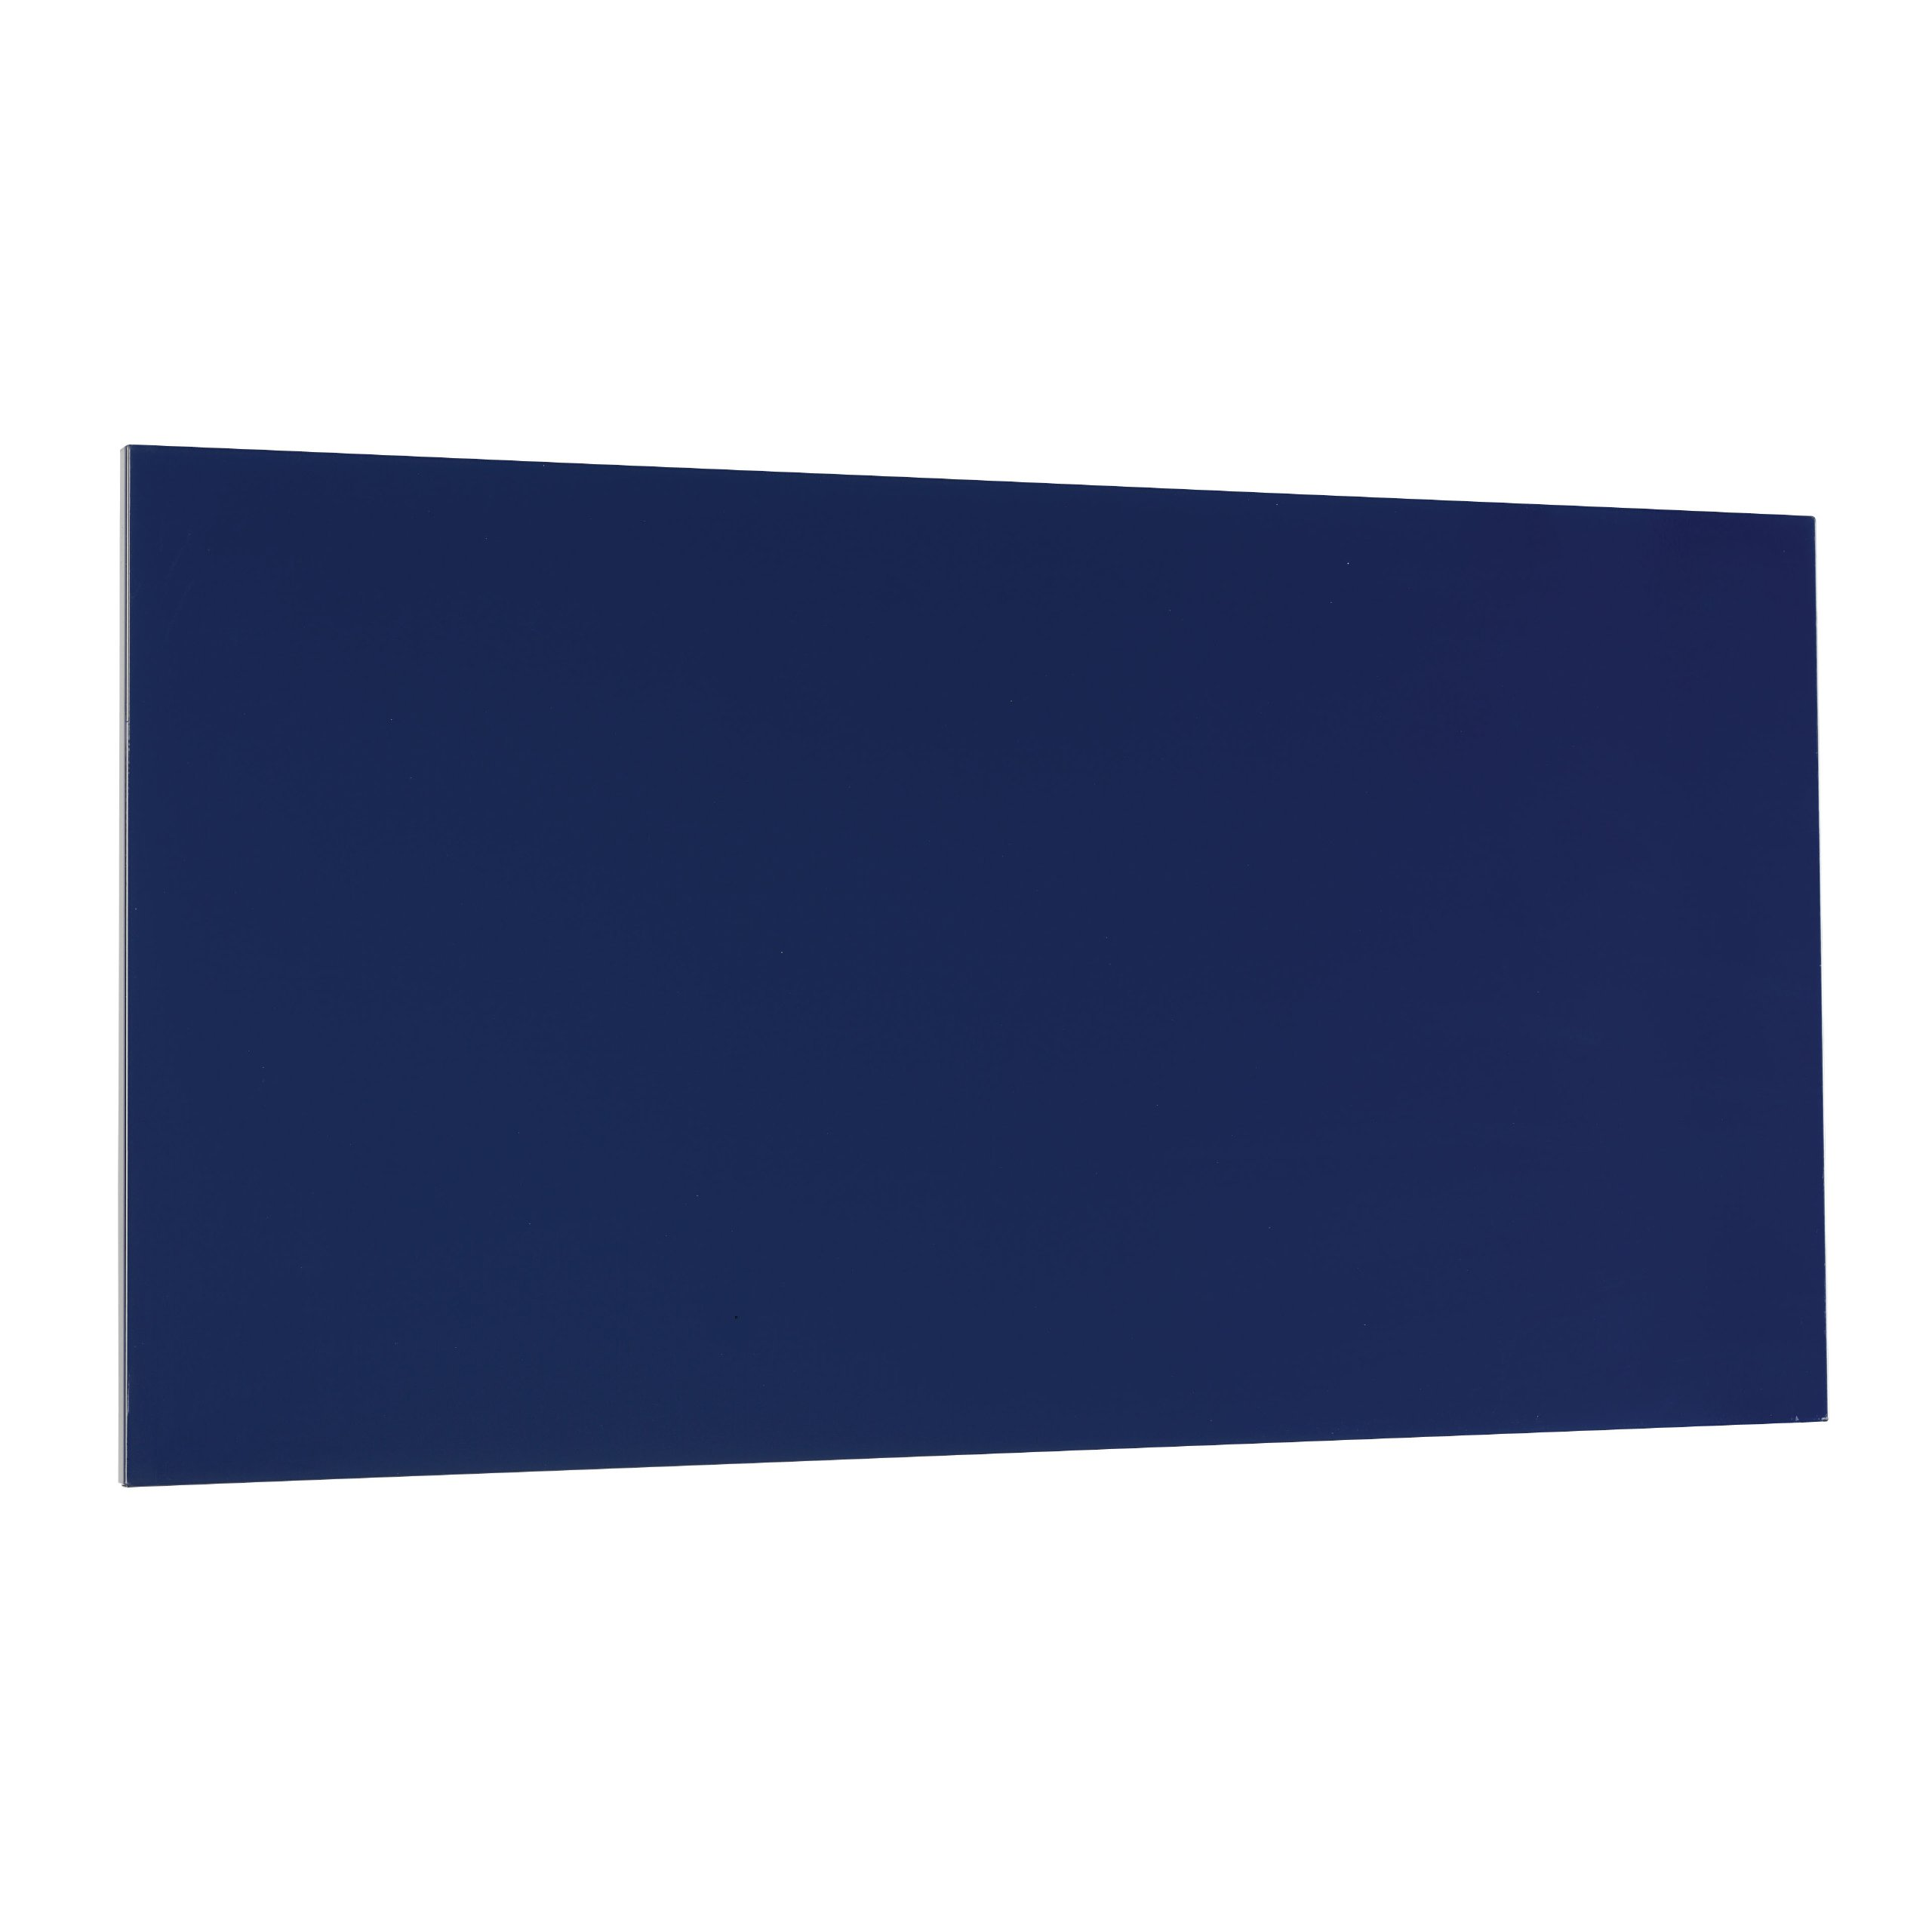 STEELMASTER Magnetic Board with Dry-Erase Pad, Pen and Magnets, 14 x 30 Inches, Blue (270163008)